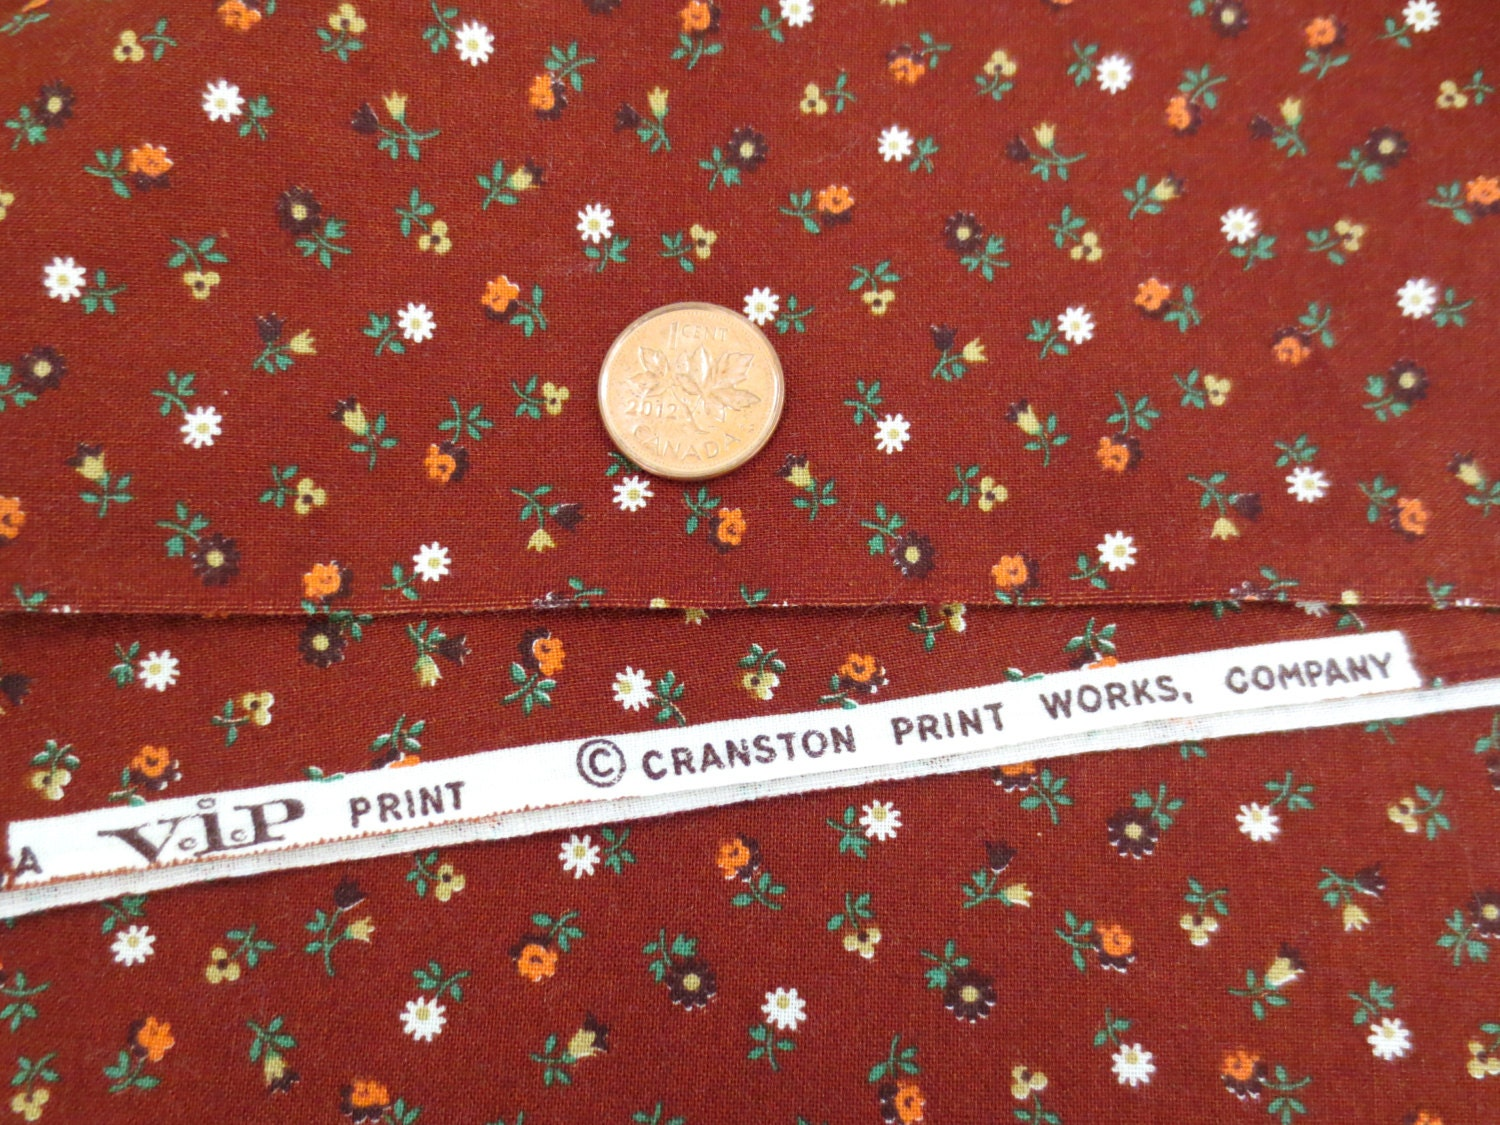 Cranston Print Works Floral Fabric By-The-Piece 100% Cotton